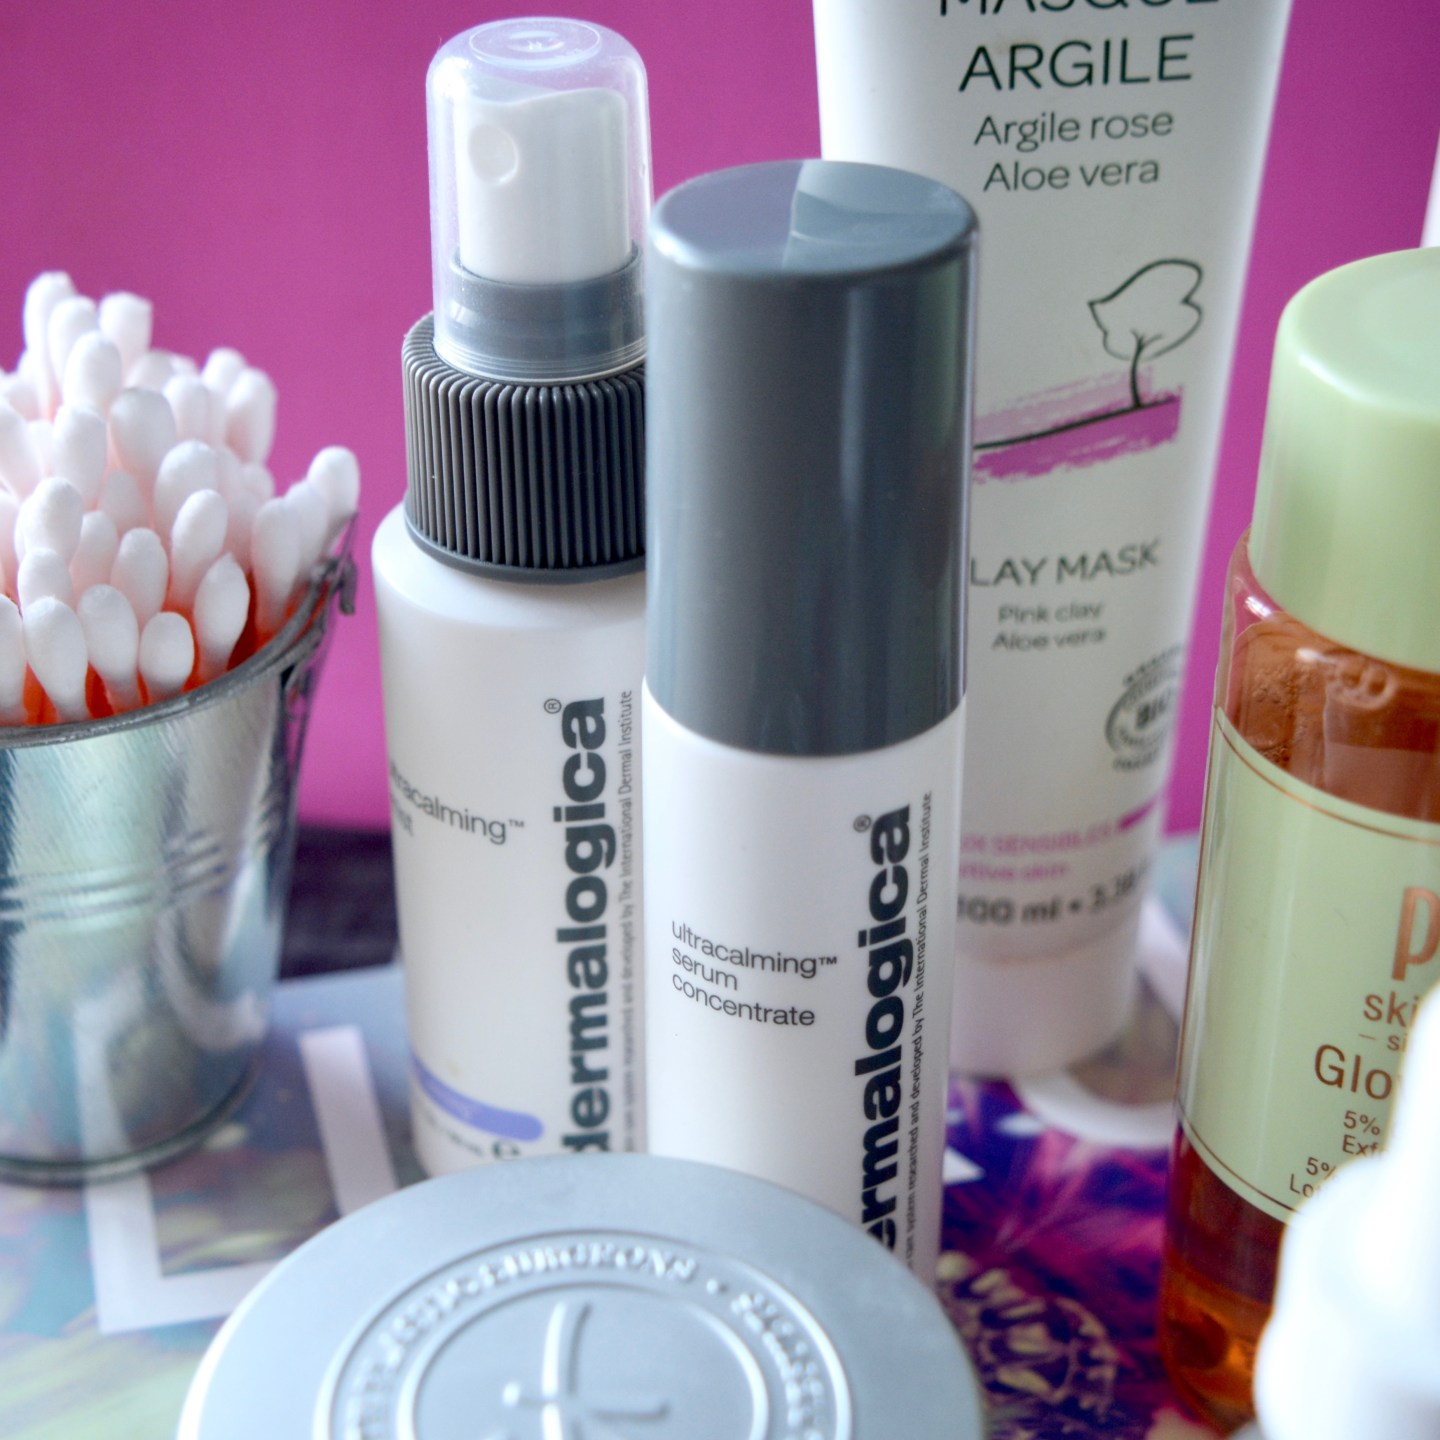 Skincare Shake Up October 2017 - Dermalogica Ultracalming range (full skincare routine for sensitive/rosacea skin)